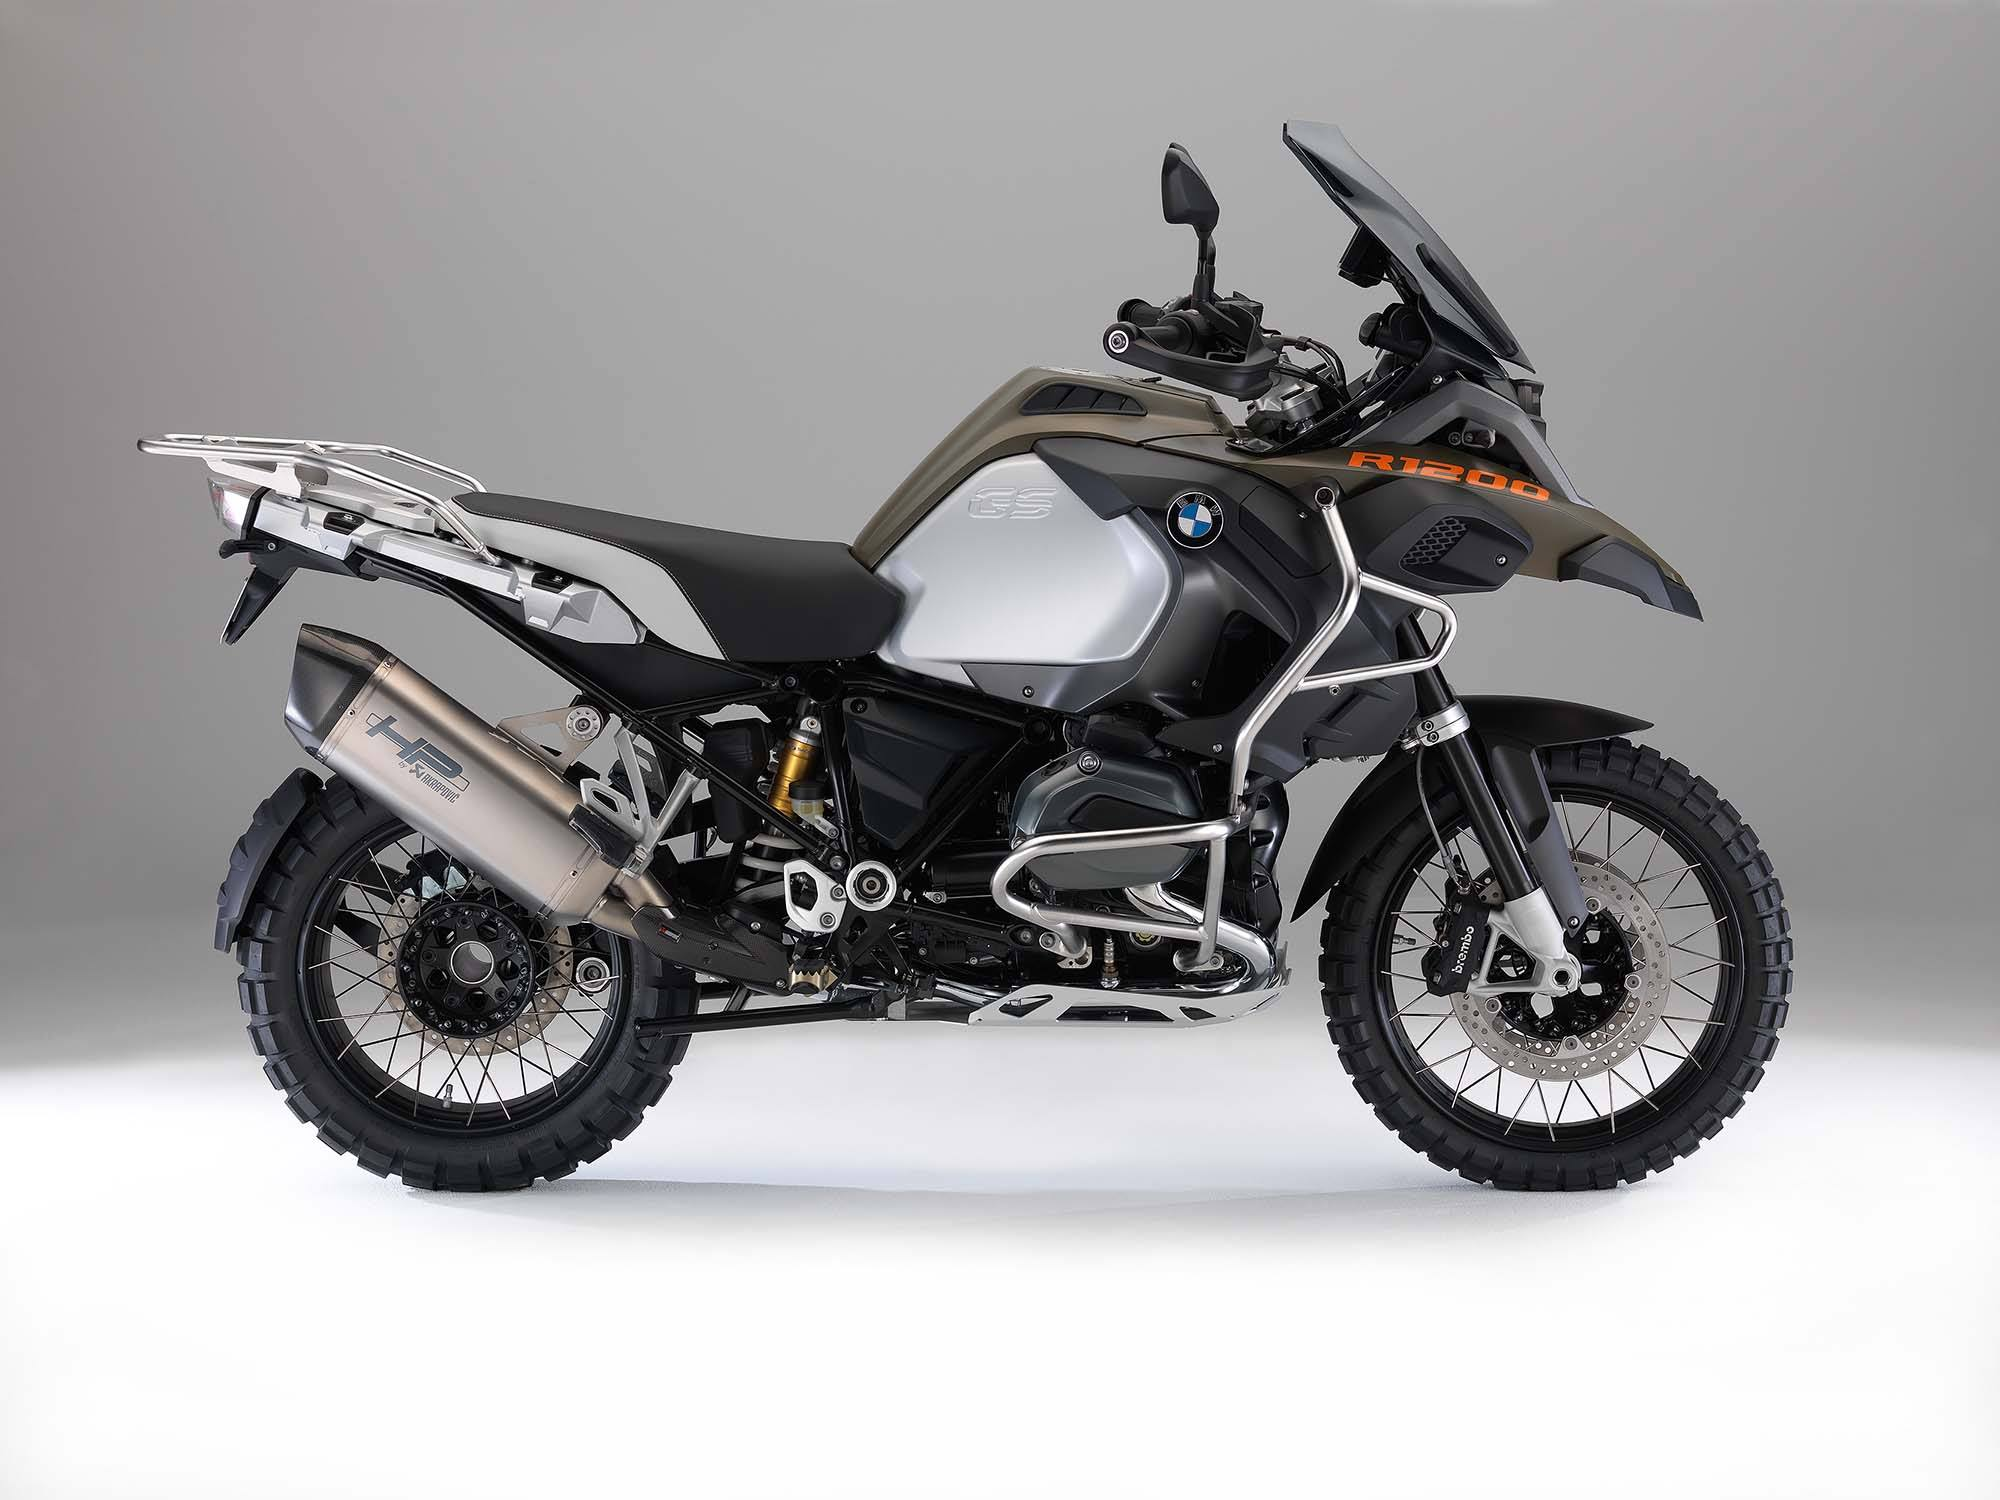 BMW R1200GS Adventure 2014 96523410